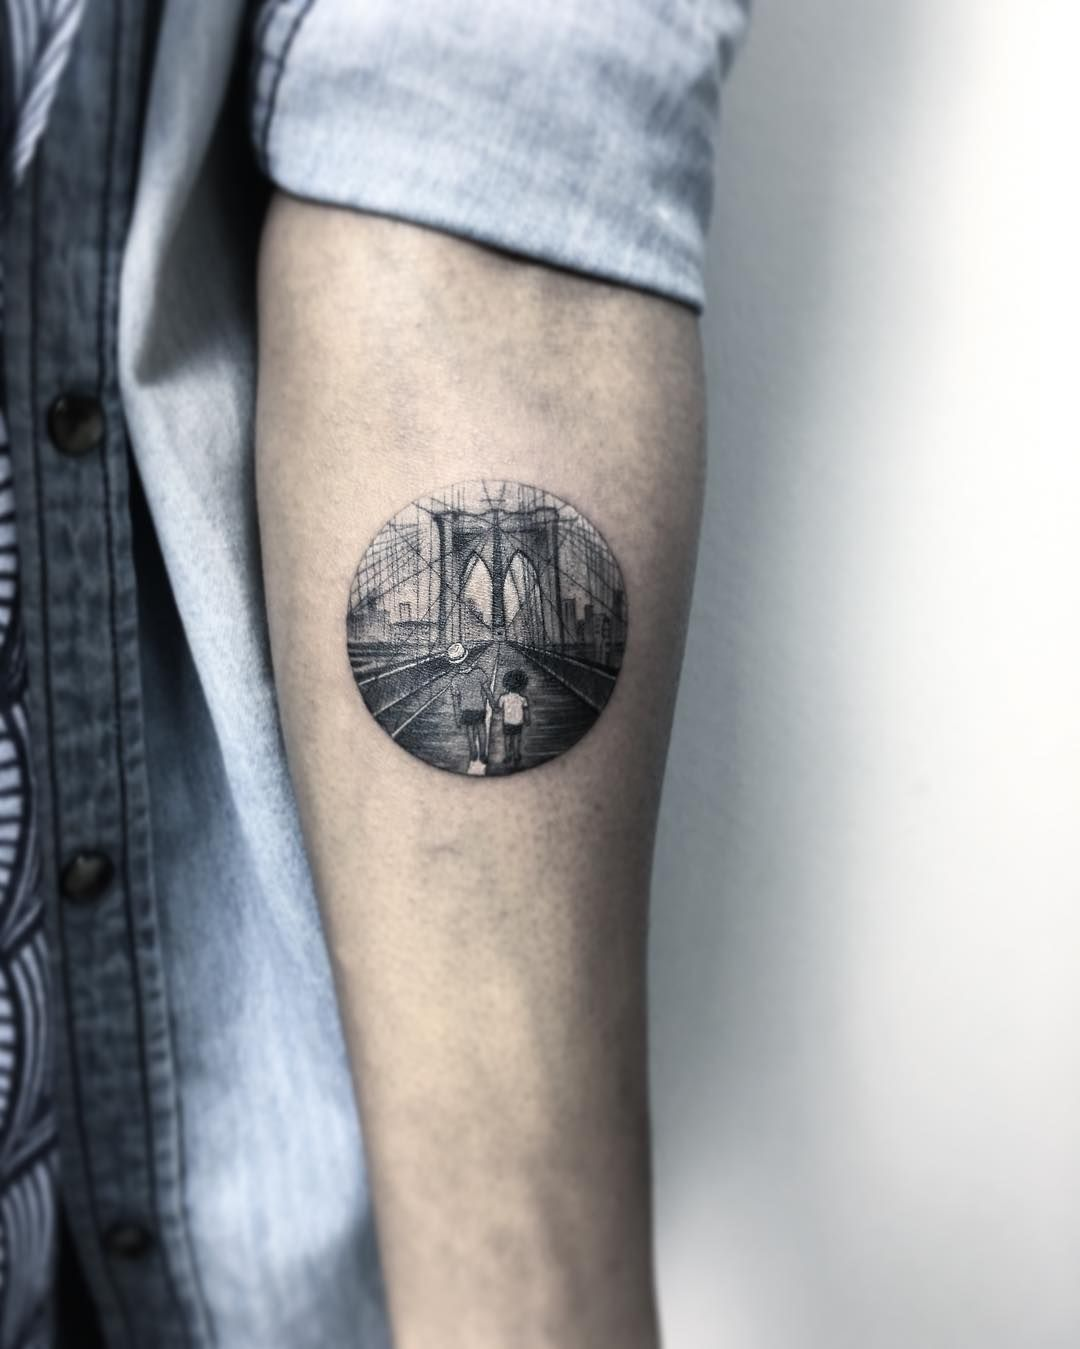 brooklyn bridge circular tattoo design by eva krbdk tattoos pinterest. Black Bedroom Furniture Sets. Home Design Ideas